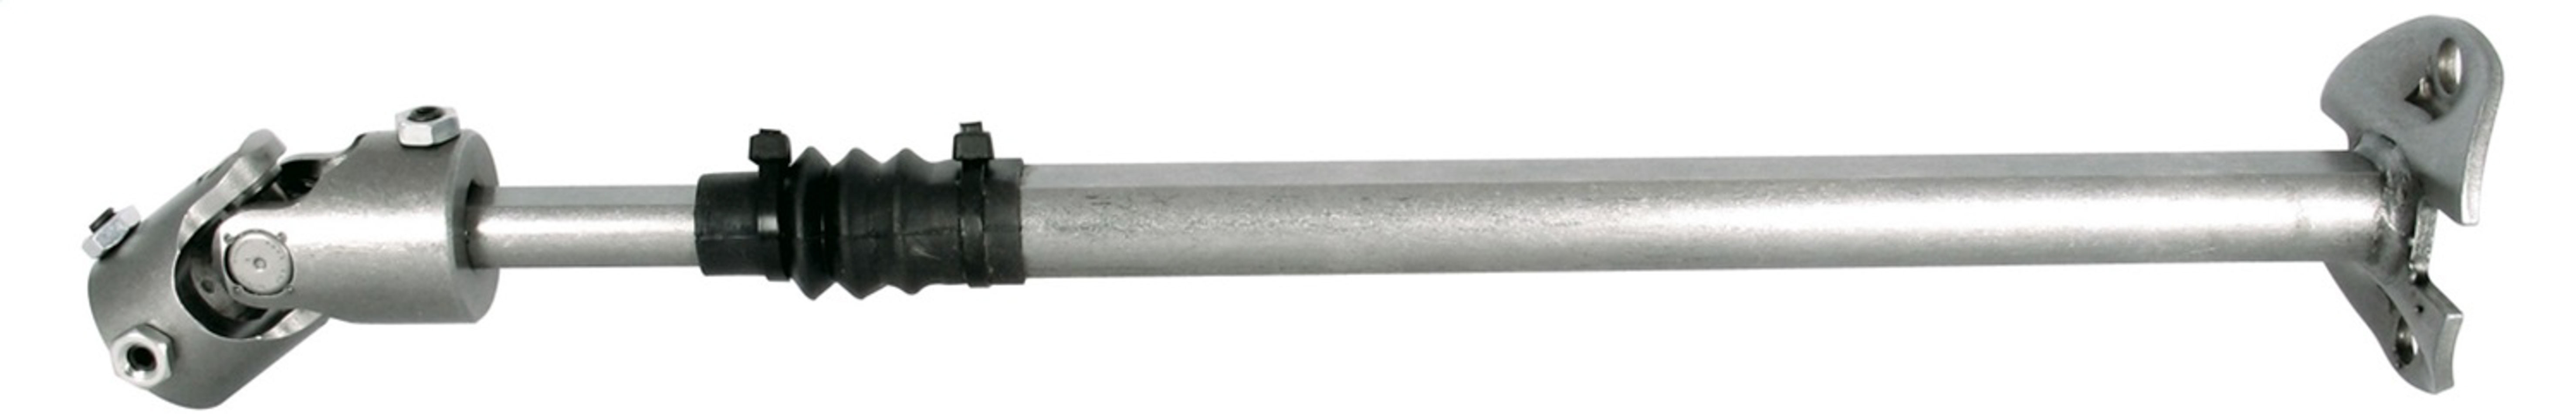 Borgeson 000934 Steering Shaft, Rag Joint, Steel, Natural, GM Fullsize SUV / Truck 1979-91, Each